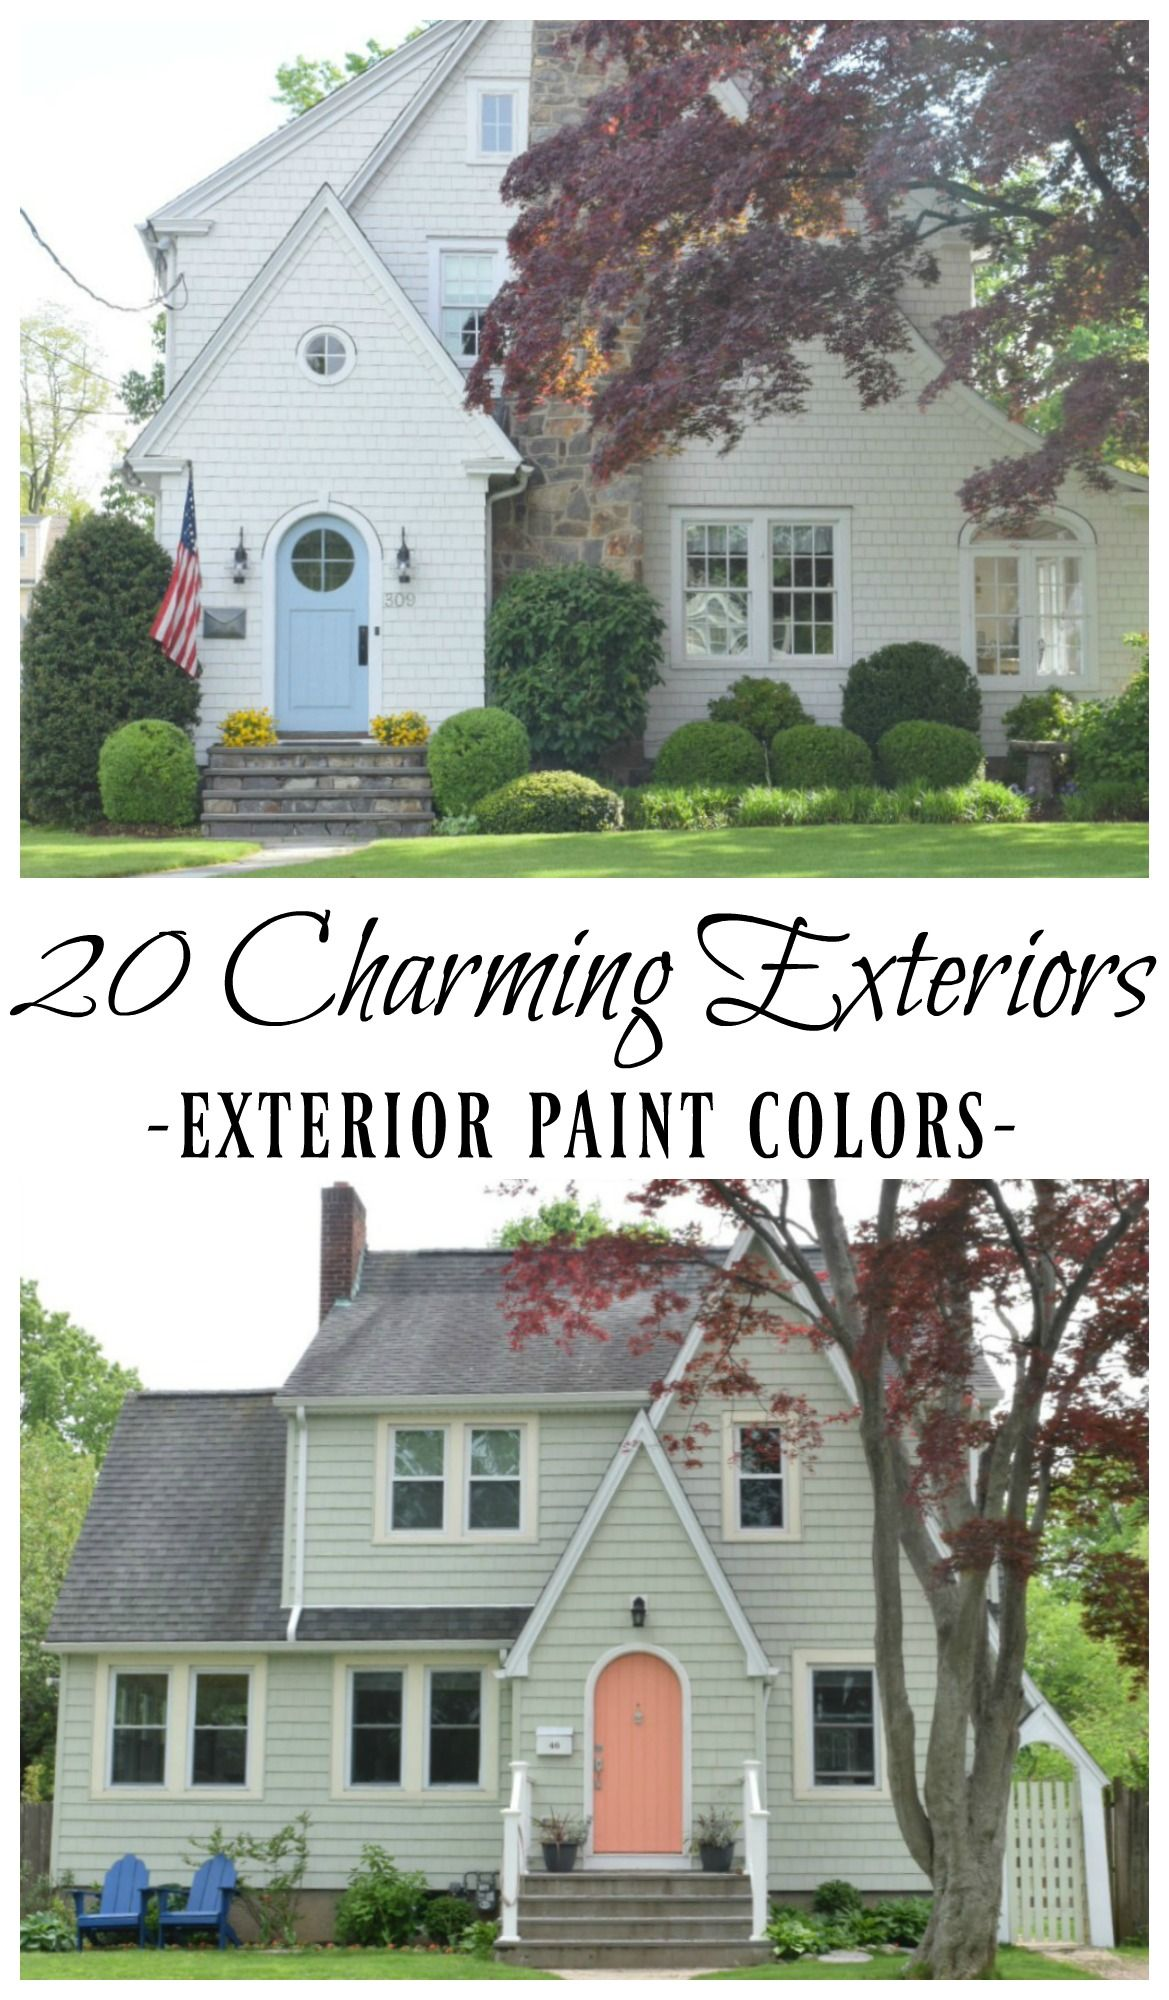 More paint colors from the uv parade of homes my favorite home - New England Homes Exterior Paint Color Ideas